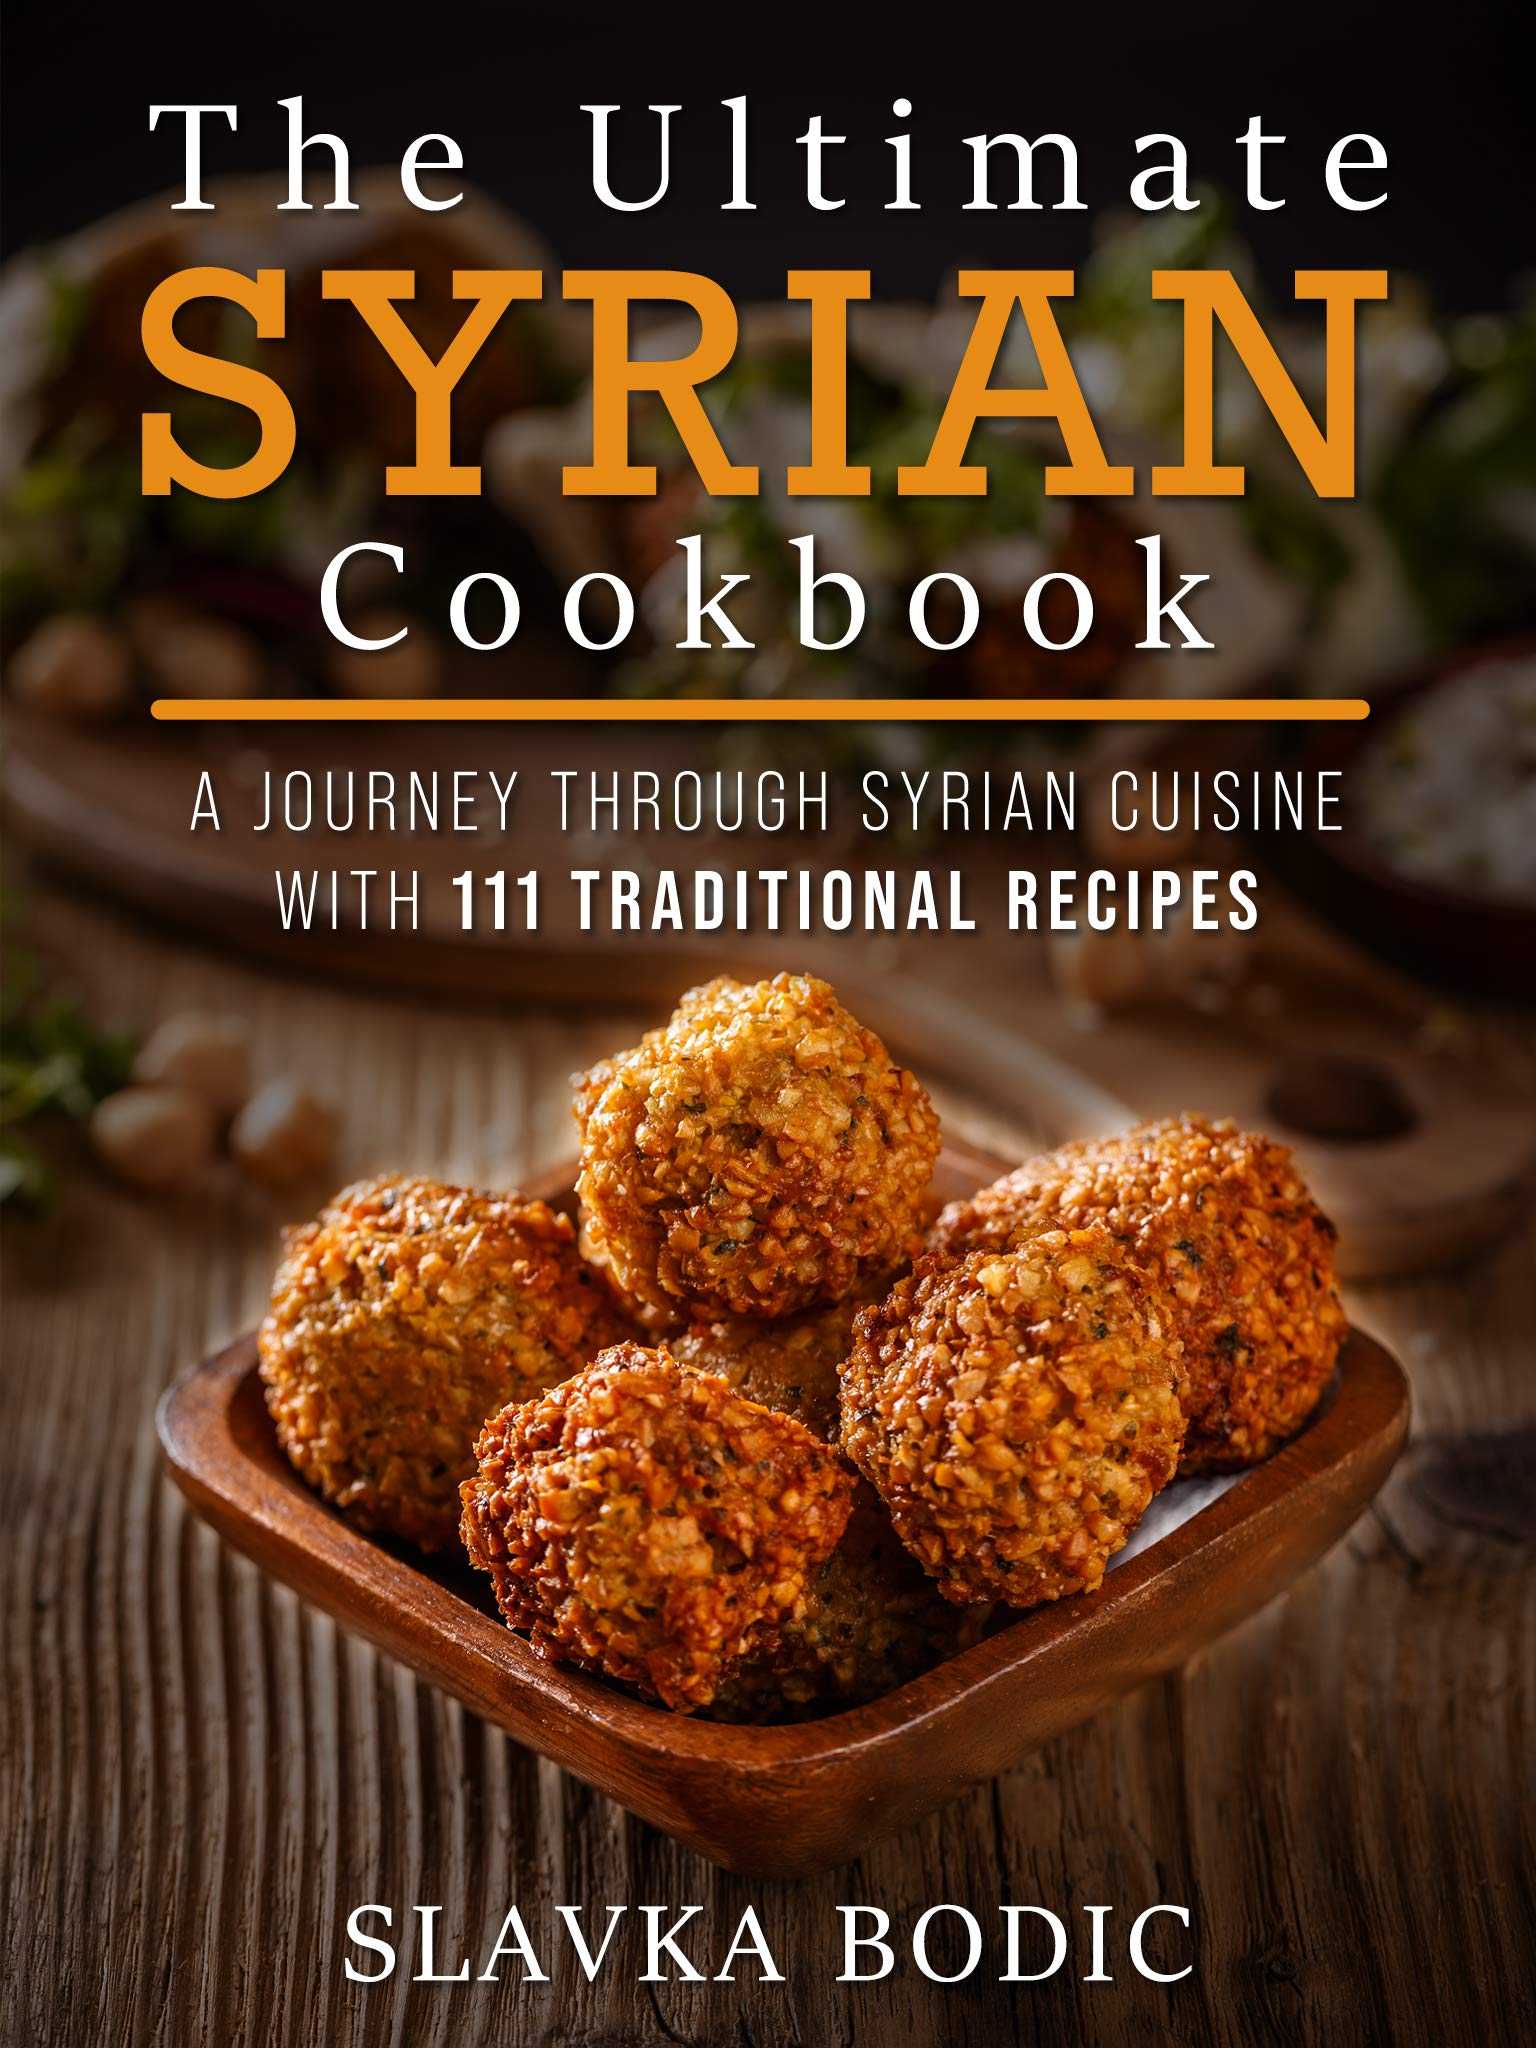 The Ultimate Syrian Cookbook: A Journey Through Syrian Cuisine With 111 Traditional Recipes (World Cuisines Book 5)